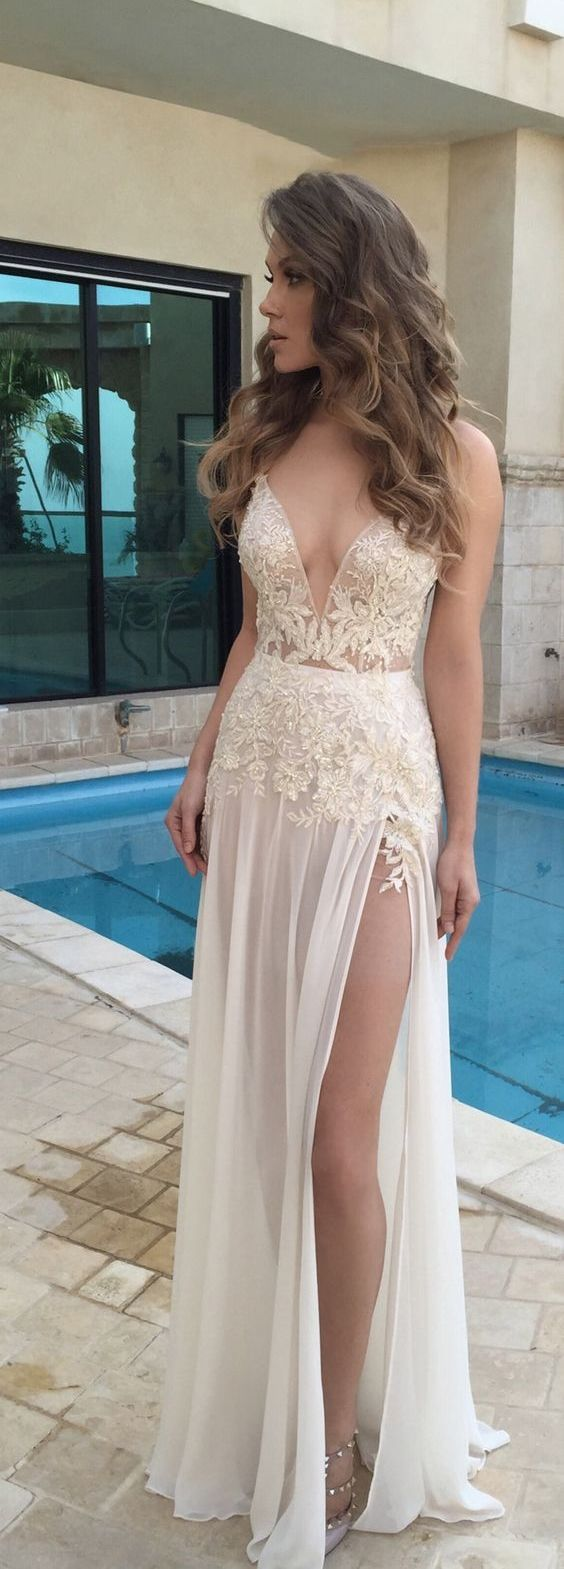 Chiffon Lace Prom Dresses Beach Wedding Sexy Gown Dress Online 271092